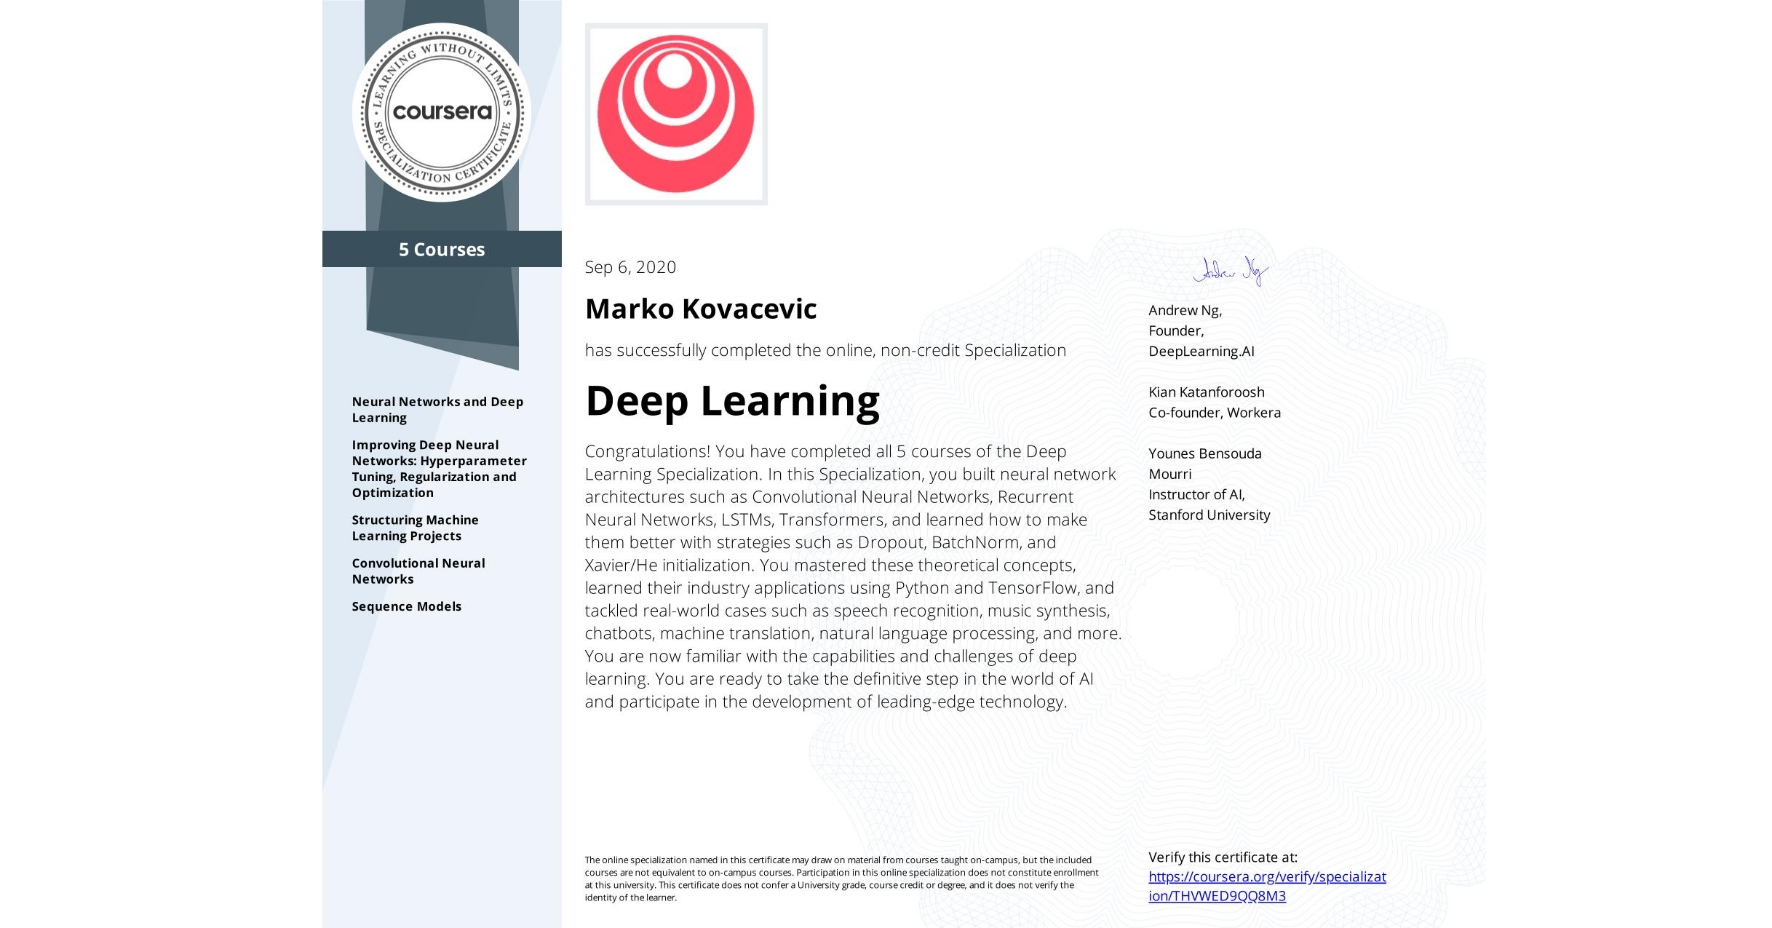 View certificate for Marko Kovacevic, Deep Learning, offered through Coursera. Congratulations! You have completed all 5 courses of the Deep Learning Specialization.  In this Specialization, you built neural network architectures such as Convolutional Neural Networks, Recurrent Neural Networks, LSTMs, Transformers, and learned how to make them better with strategies such as Dropout, BatchNorm, and Xavier/He initialization. You mastered these theoretical concepts, learned their industry applications using Python and TensorFlow, and tackled real-world cases such as speech recognition, music synthesis, chatbots, machine translation, natural language processing, and more.  You are now familiar with the capabilities and challenges of deep learning. You are ready to take the definitive step in the world of AI and participate in the development of leading-edge technology.